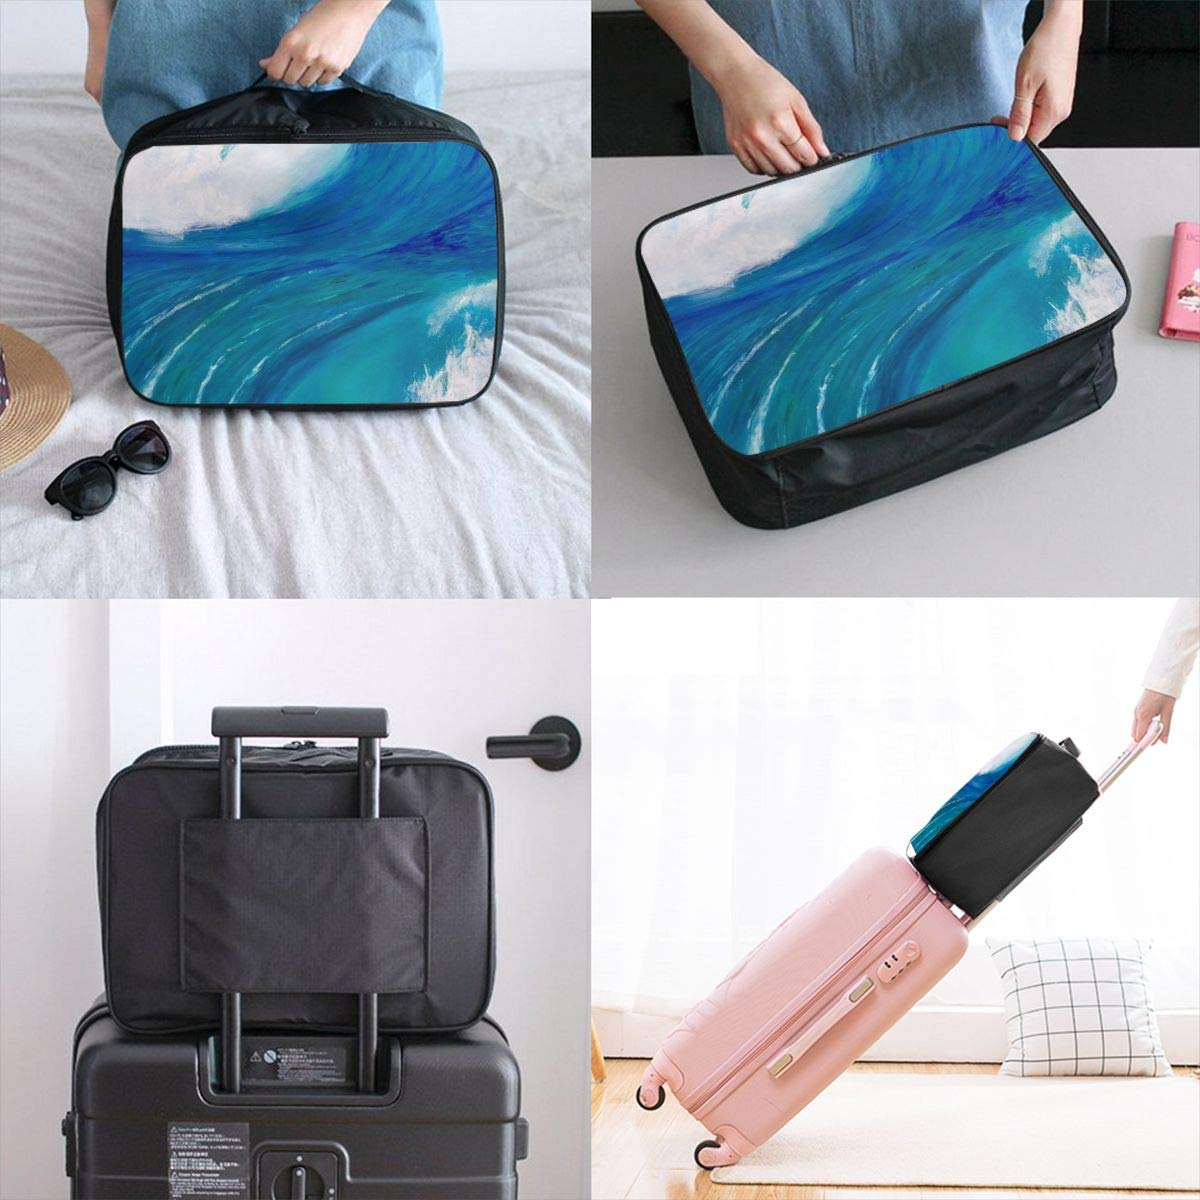 Yin Yang Waves Travel Lightweight Storage Carry Luggage Duffle Tote Bag